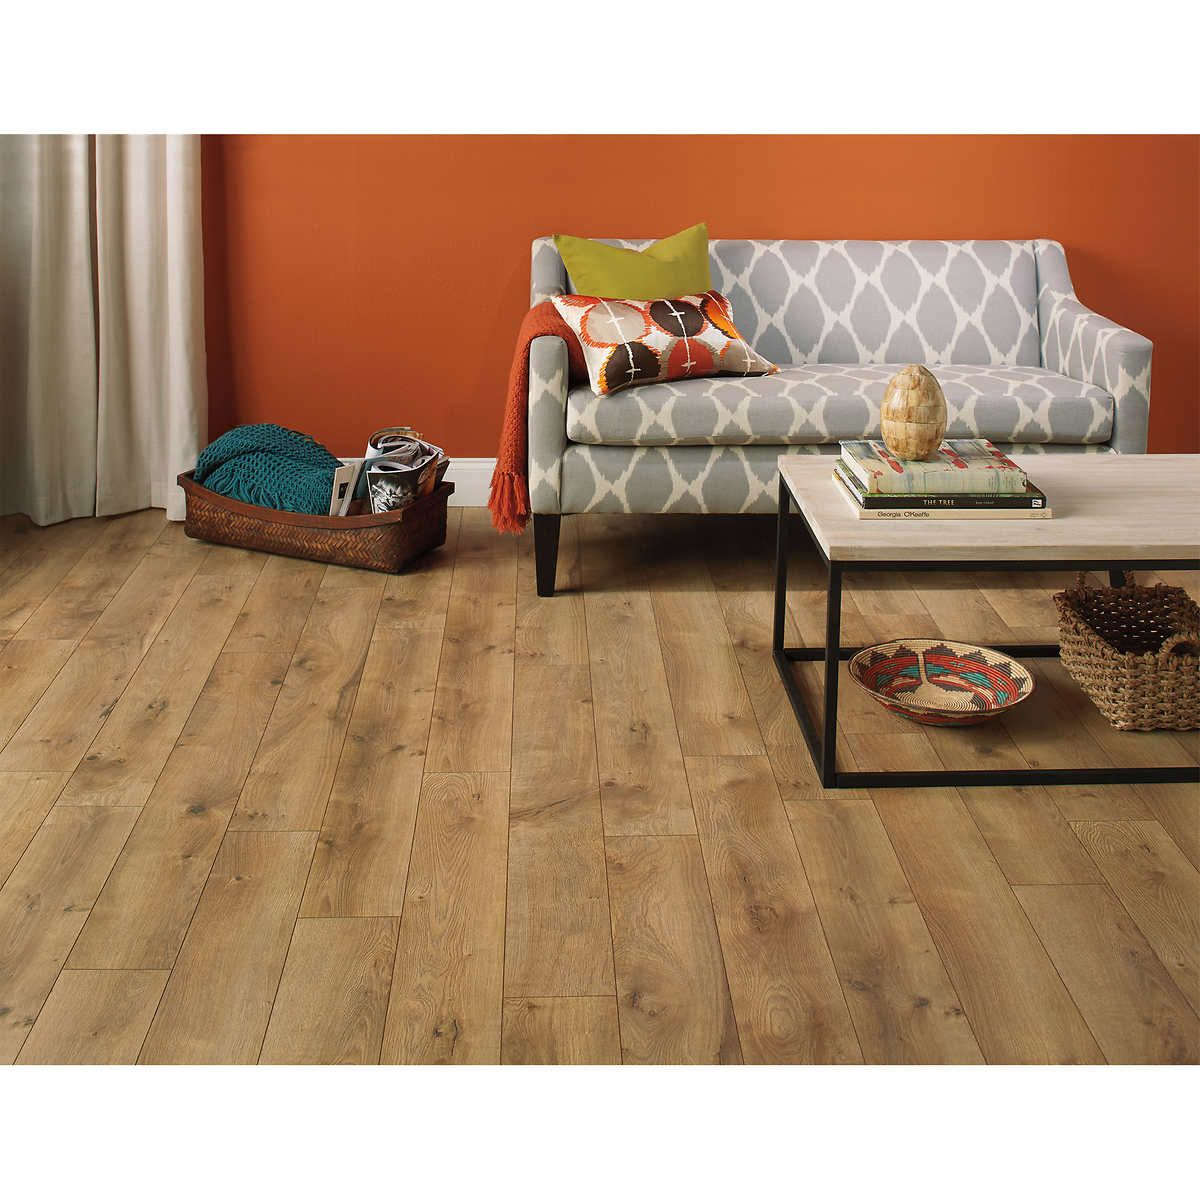 vinyl cleaner plus costco floors cost reviews flooring wood for installed tile or